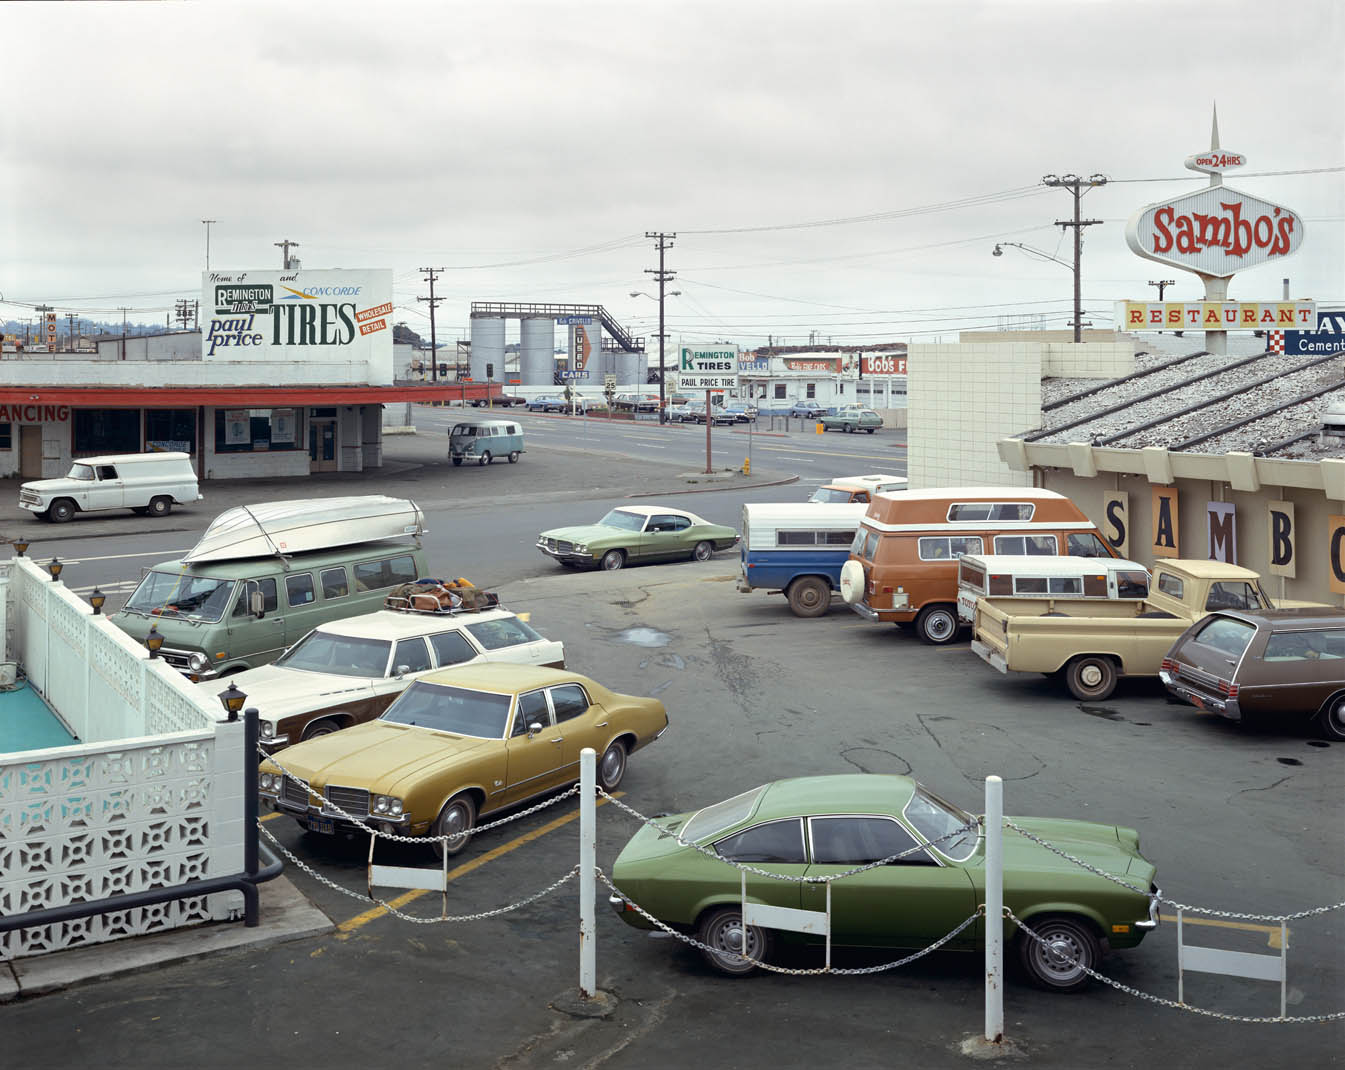 Fifth Street y Broadway, Eureka, California, 2 de septiembre de 1974 Stephen Shore